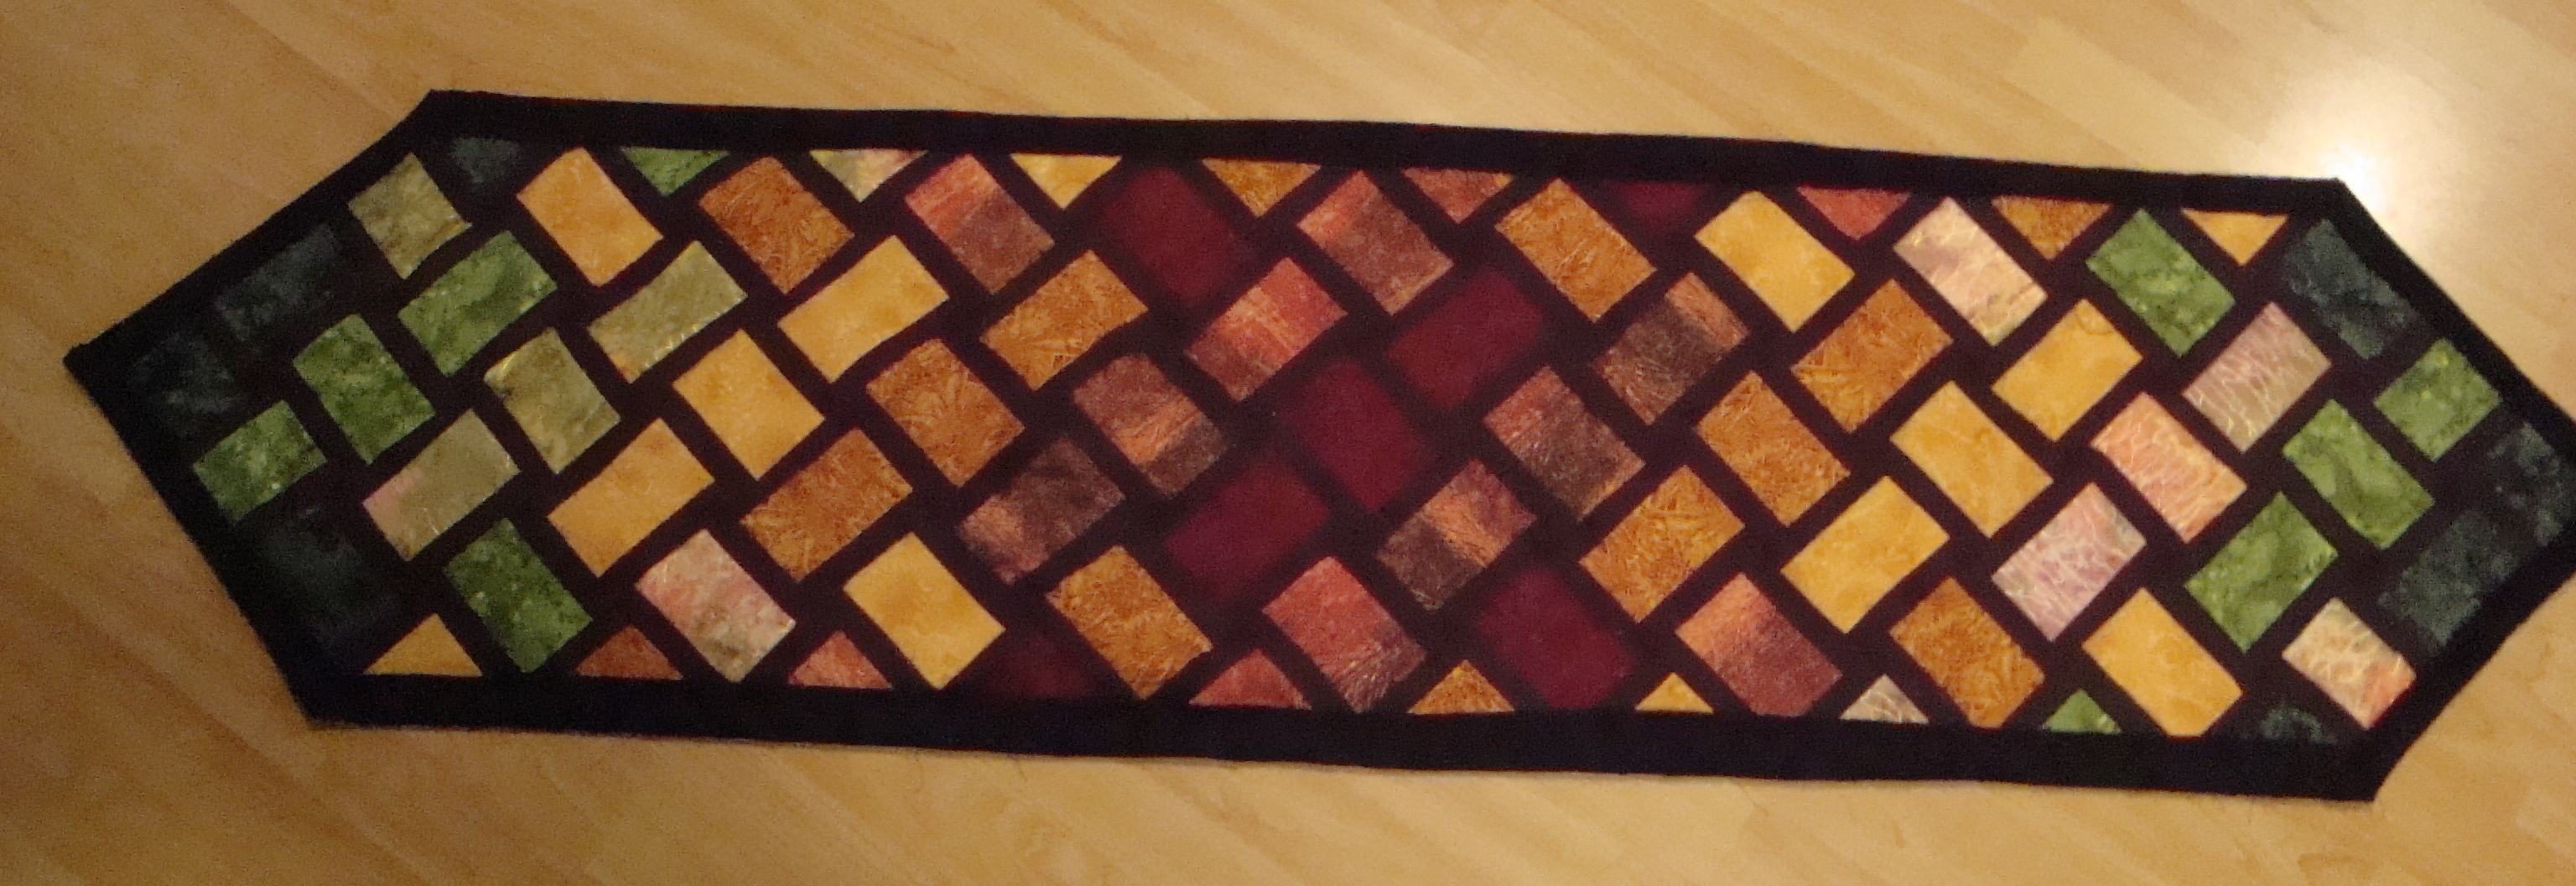 large table img marcia quilting s quilted striped quilt sewing crafty runner